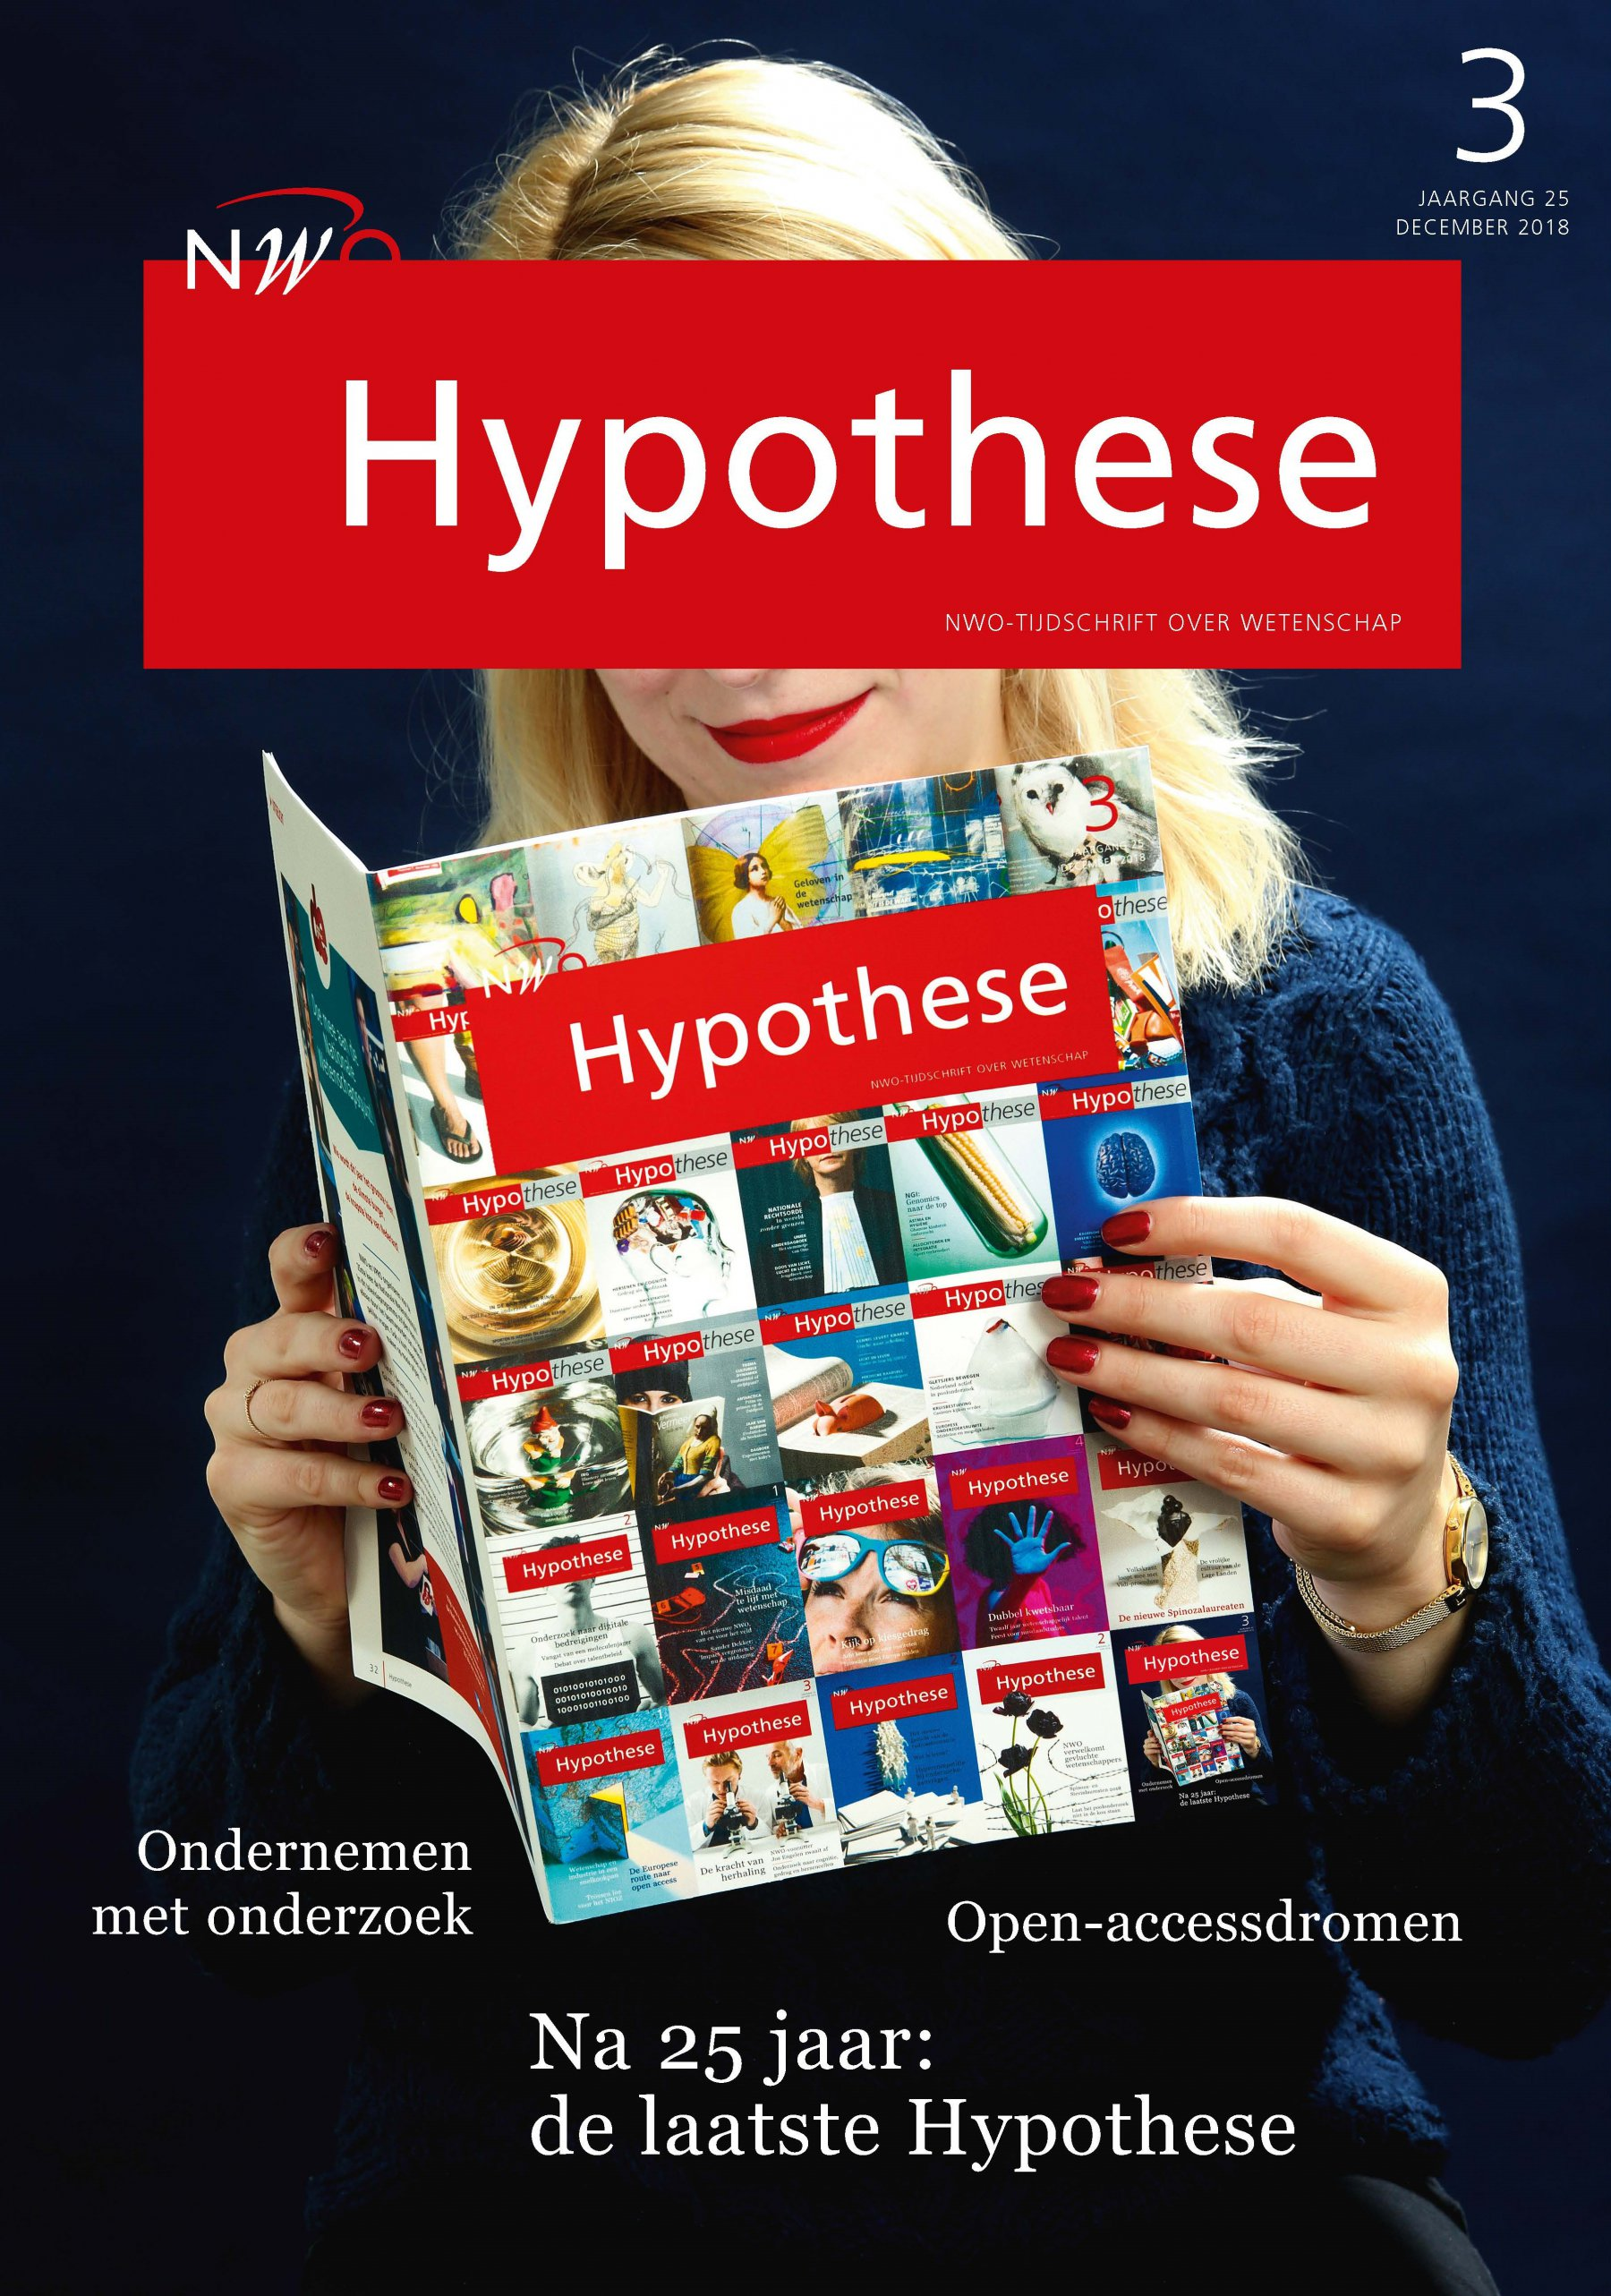 Hypothese_2028_3_cover